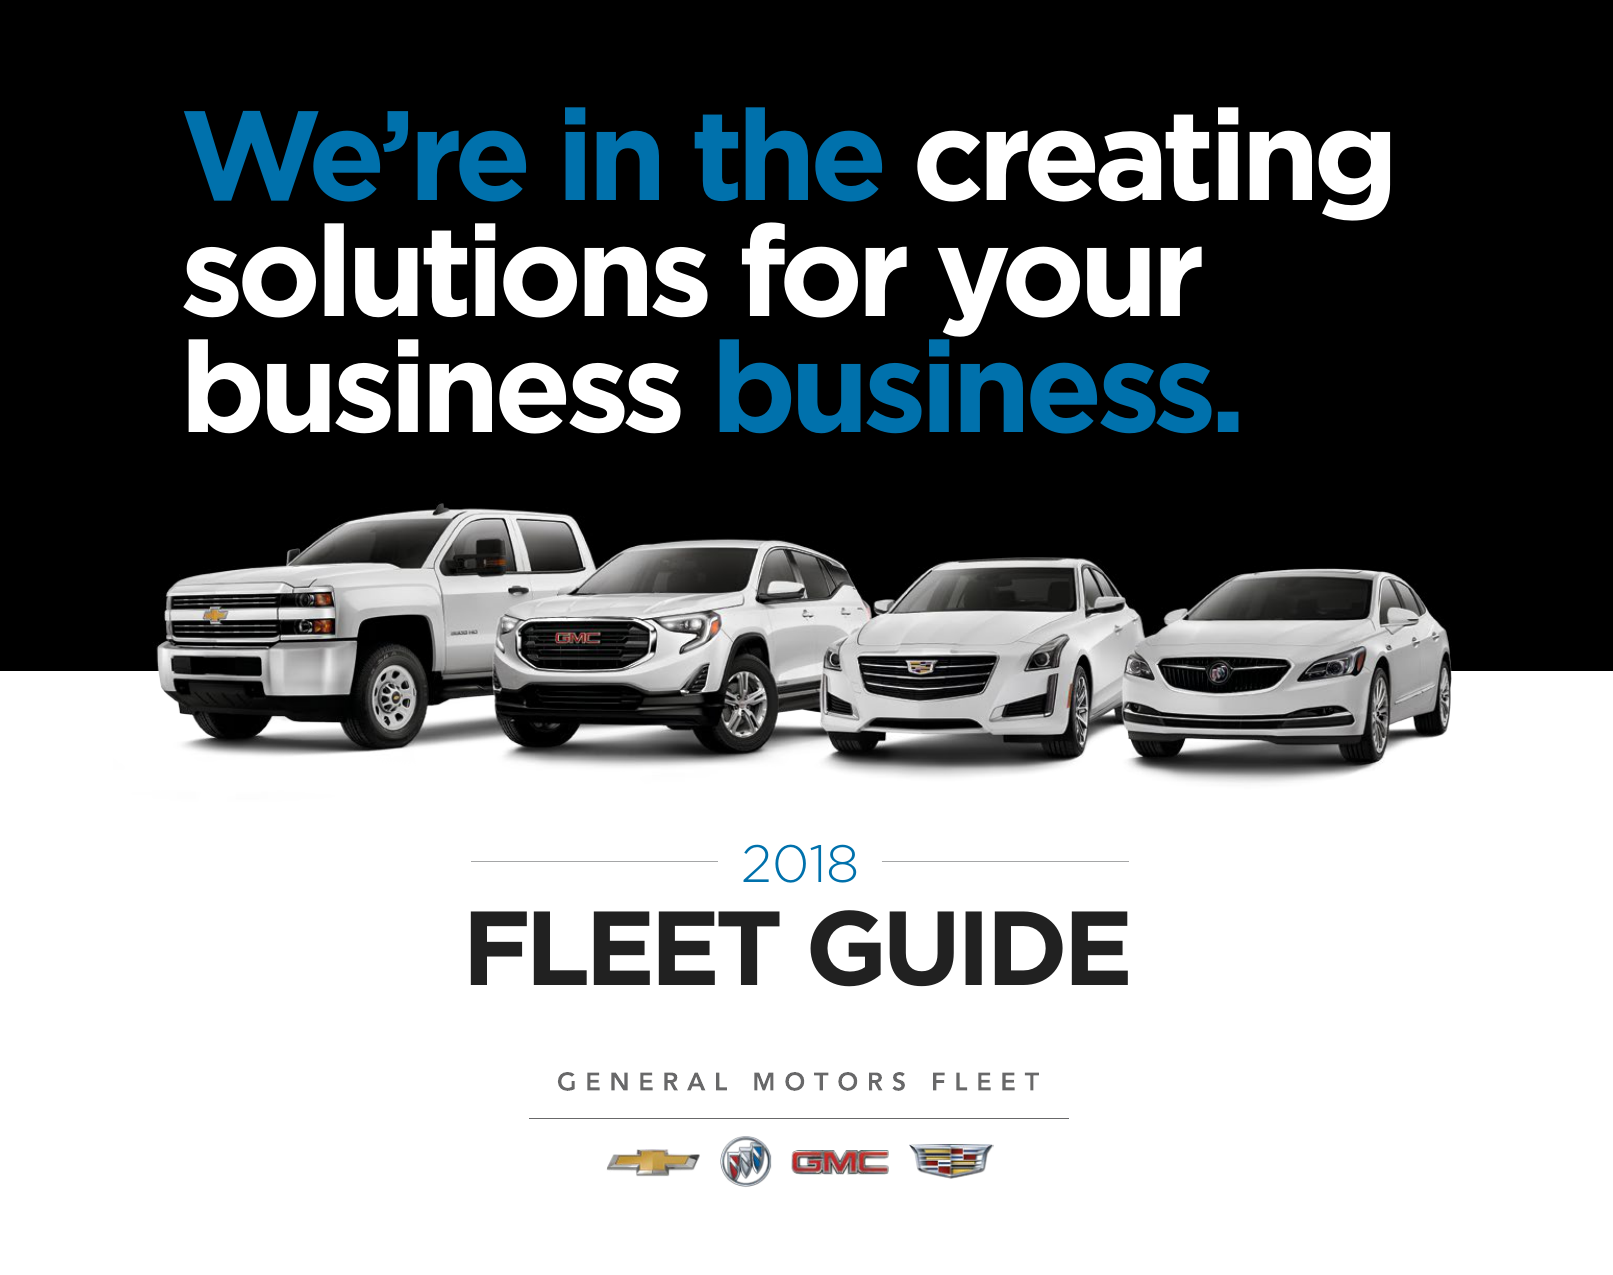 Fleet Brochure | Manualzz New 2022 Buick Envision Brochure, Build, Running Boards